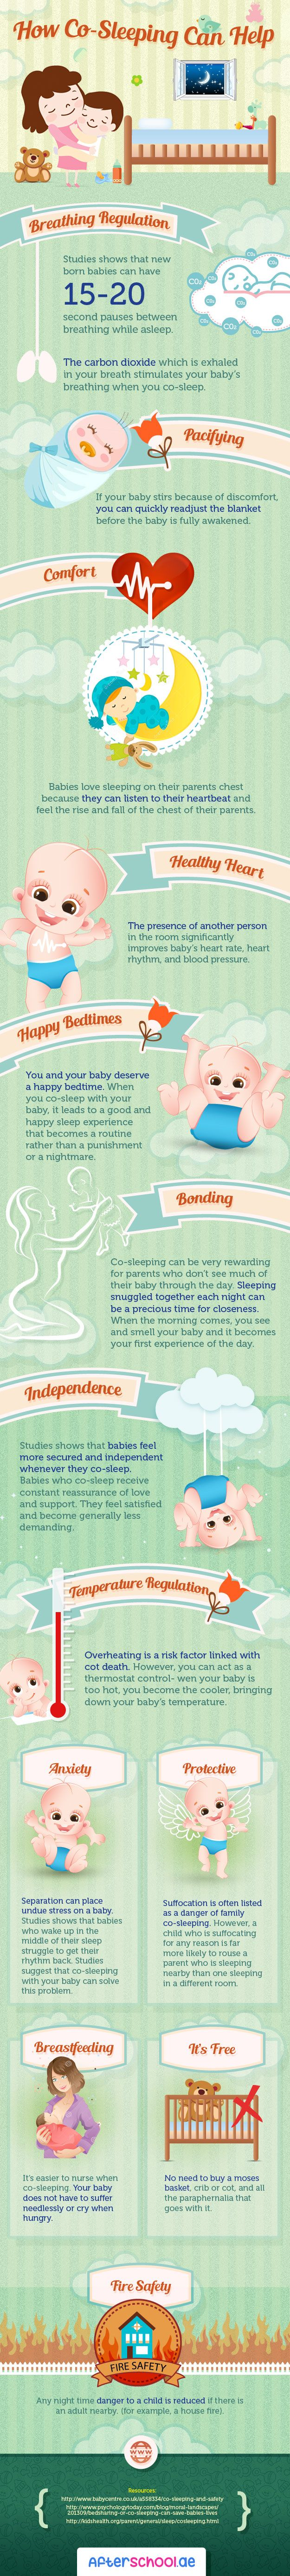 Baby bed heartbeat - Crazy Things You Never Knew About Your Baby S Sleep